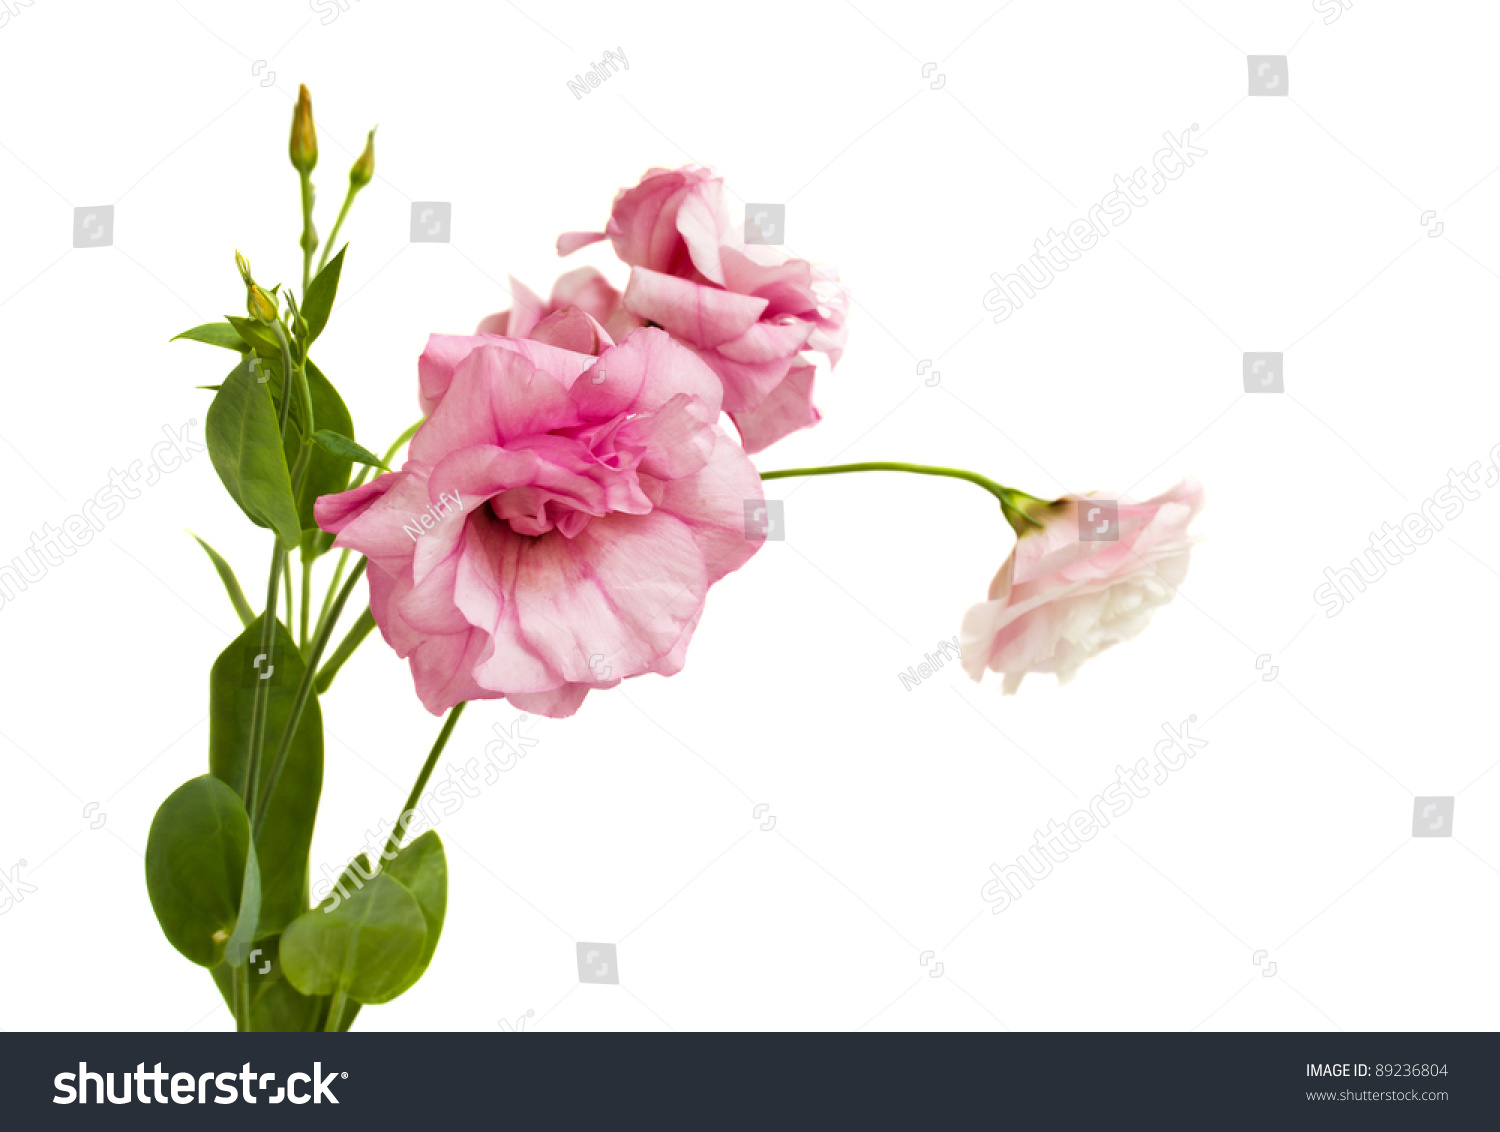 Bunch pink eustoma lisianthus flowers isolated stock photo image bunch of pink eustoma lisianthus flowers isolated on white background mightylinksfo